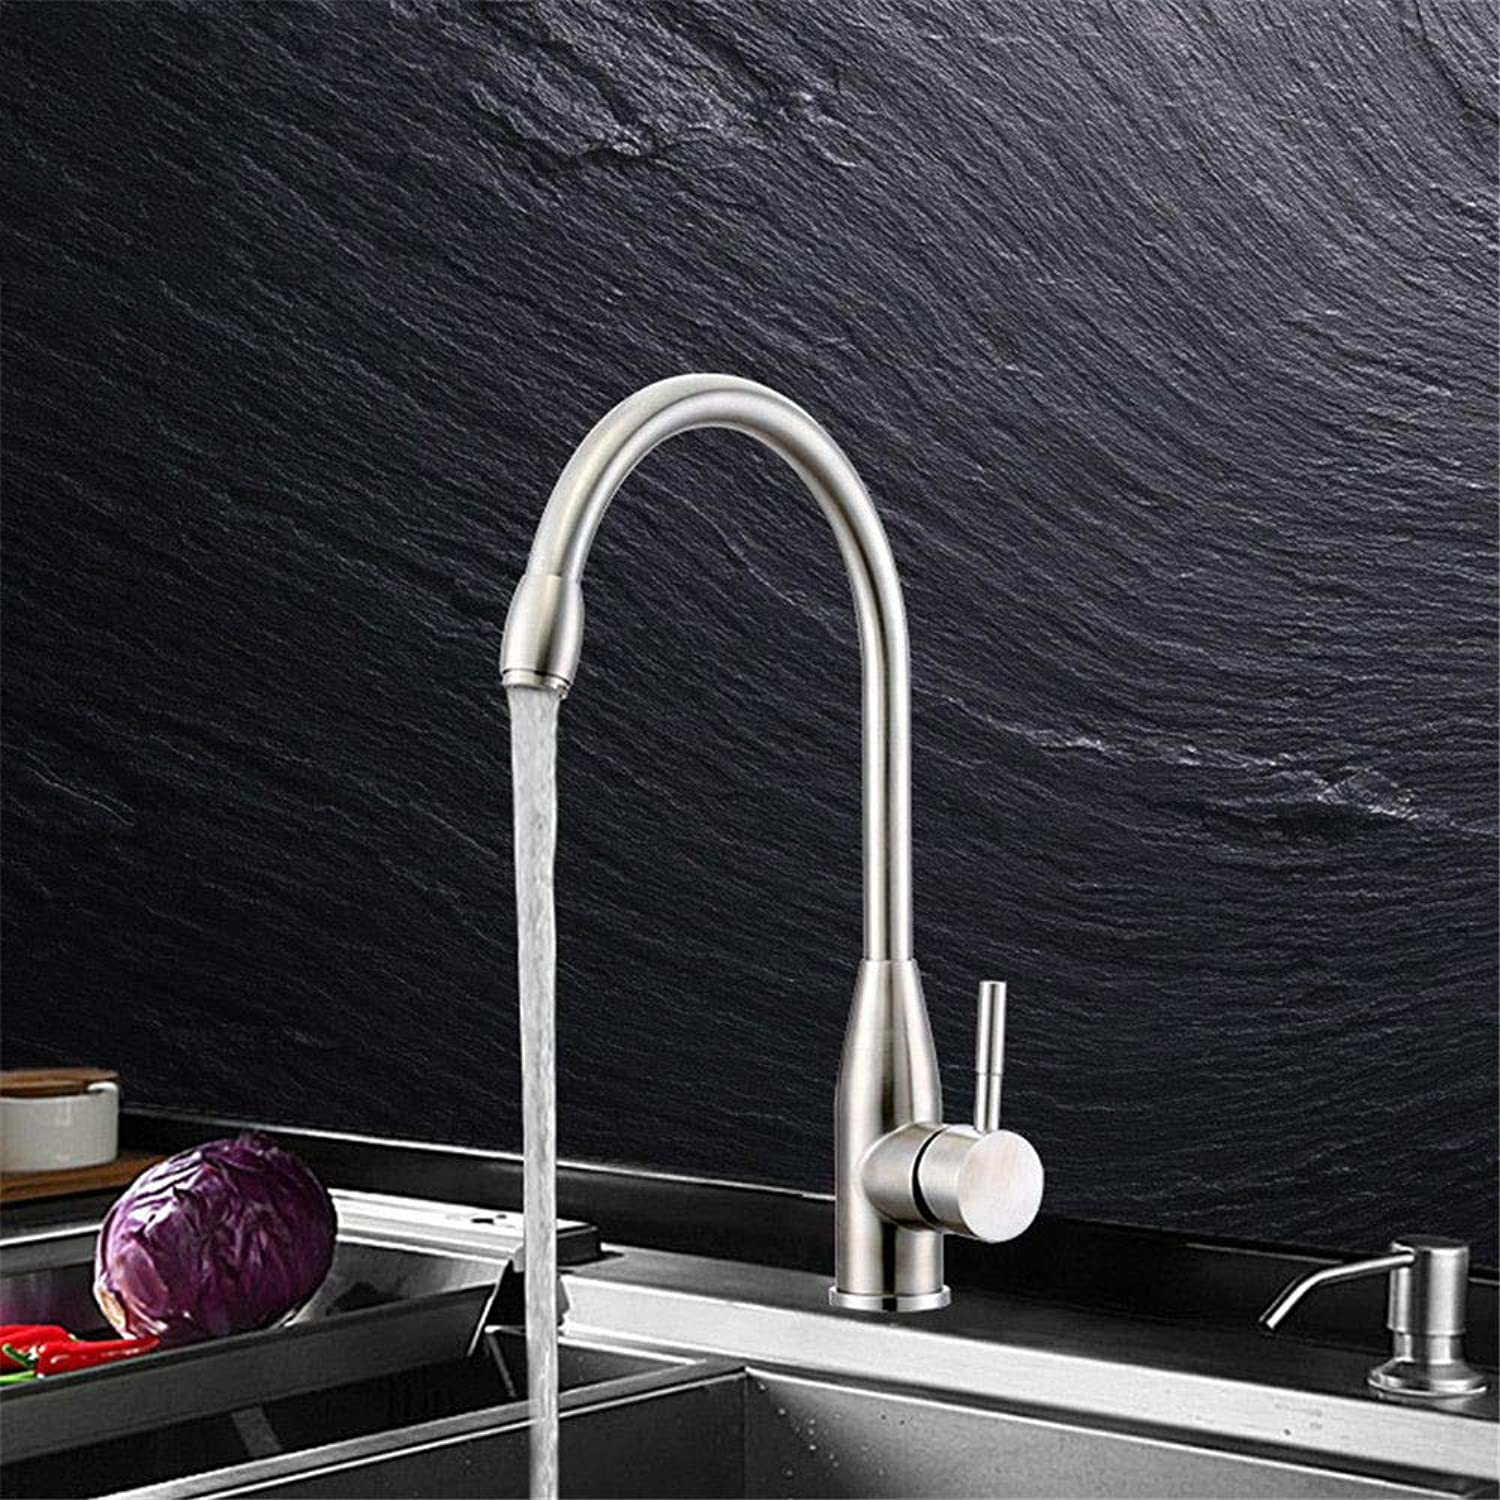 YAWEDA Sus304 Stainless Steel Faucet Kitchen Faucet Wire Drawing Cold and Hot Water Mixer Faucet Kitchen Sink Cold and Hot Water Mixer Faucet Single Handle Belt Aerator